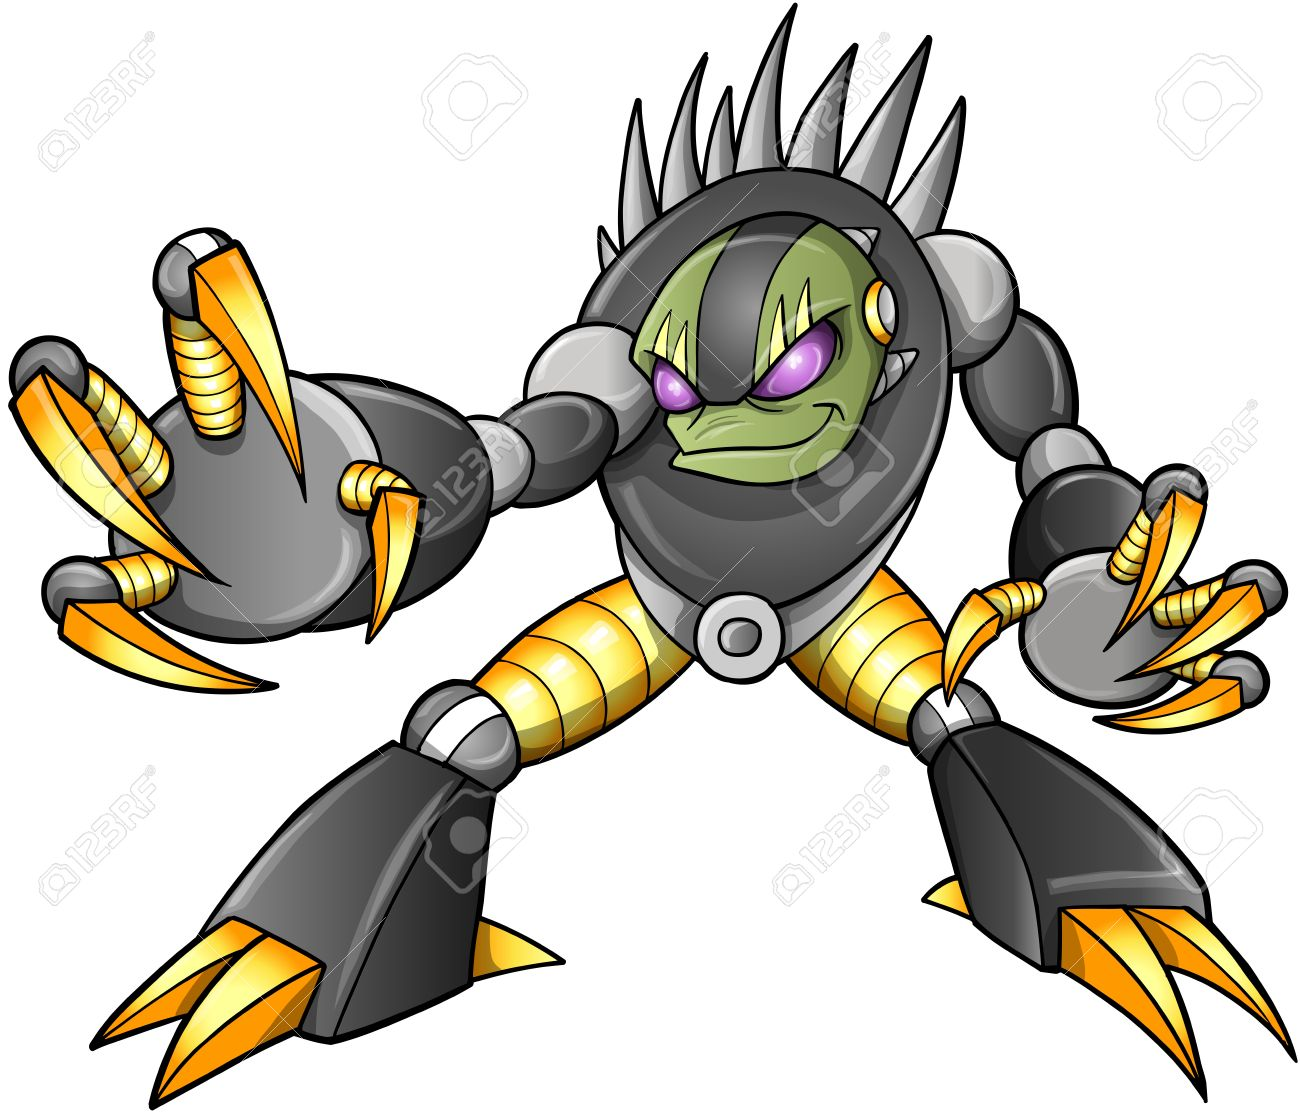 Cyborg Alien Ninja Warrior Robot Vector Stock Vector - 16542930